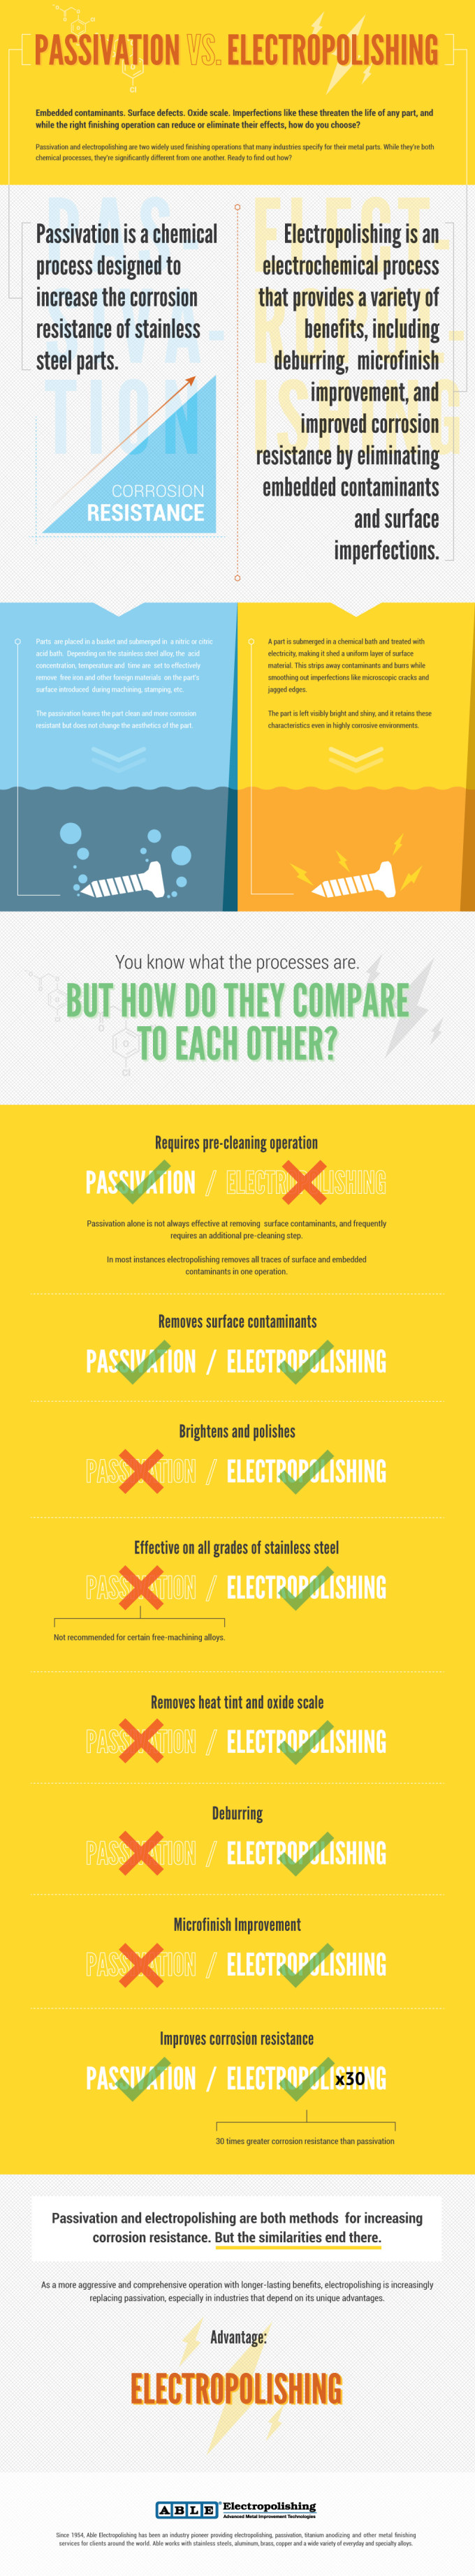 AbleElectropolishing-PassivationVsElectropolish-Infographic